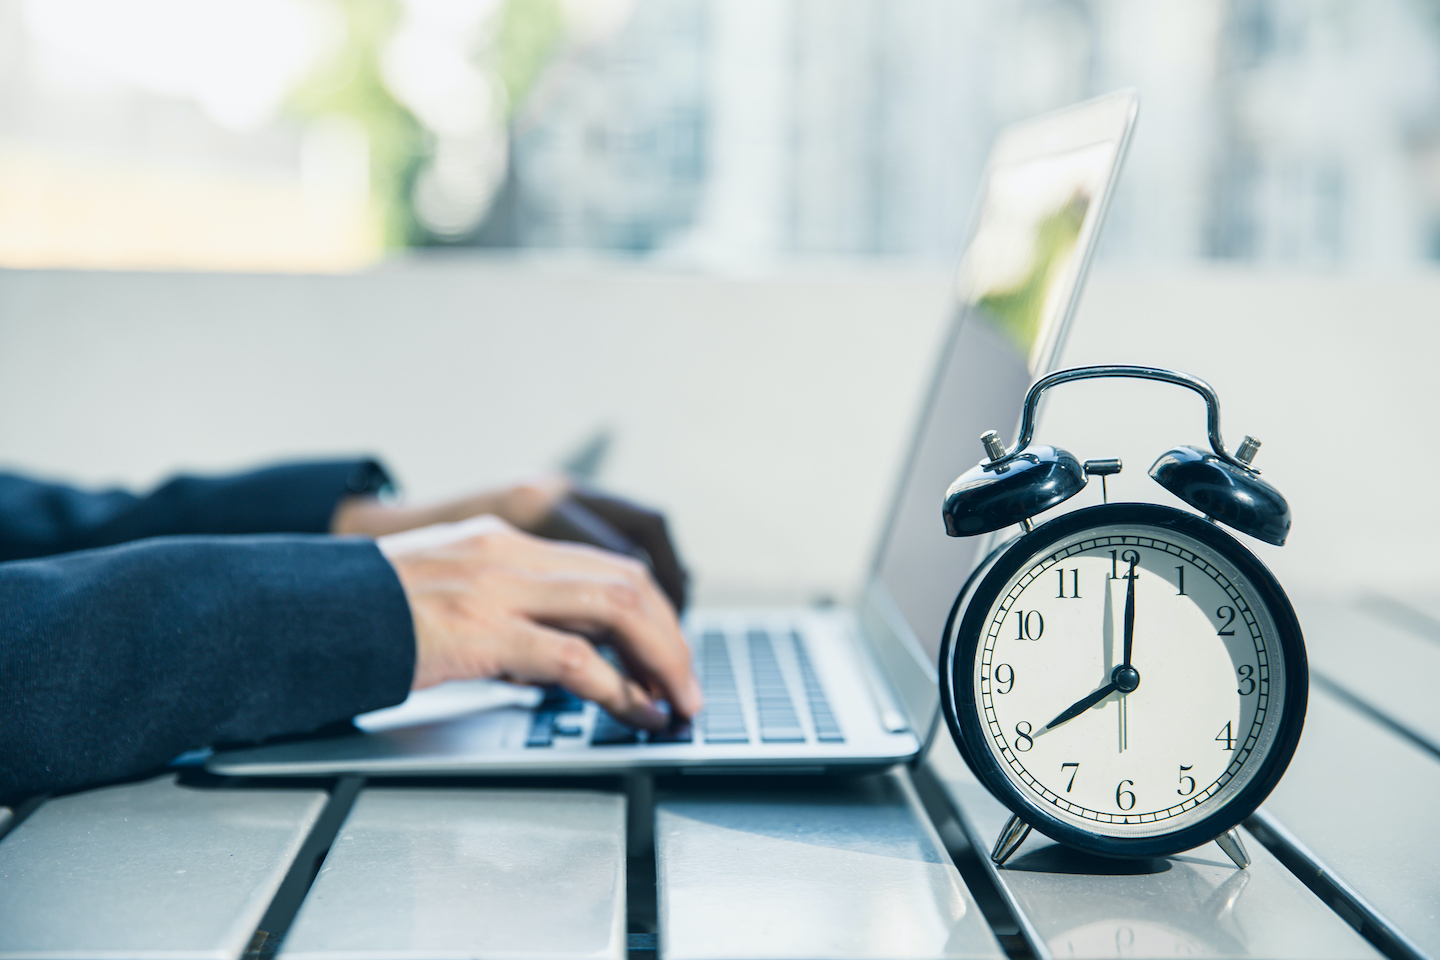 Lawyers, Avoid These 4 Time-Wasters in Your Practice